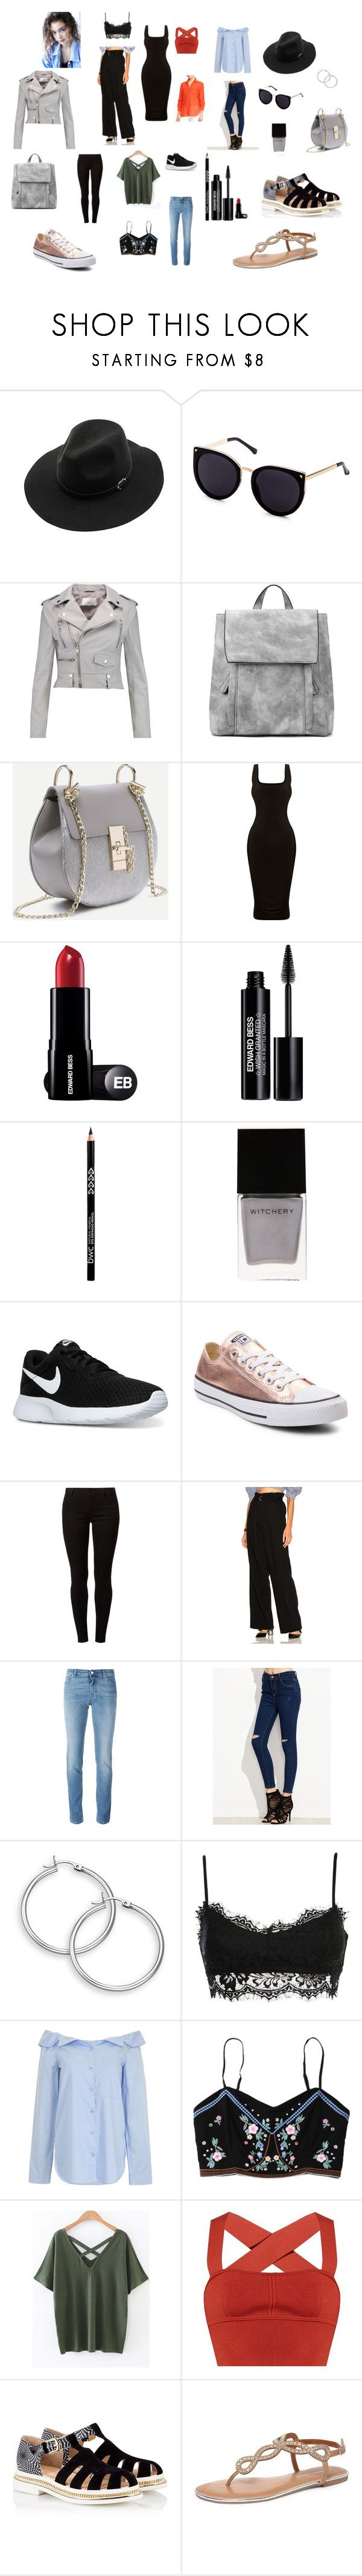 """""""Untitled #1"""" by adriana-isabela-silva on Polyvore featuring WithChic, W118 by Walter Baker, Edward Bess, Witchery, NIKE, Converse, Dorothy Perkins, 3.1 Phillip Lim, Givenchy and TIBI"""